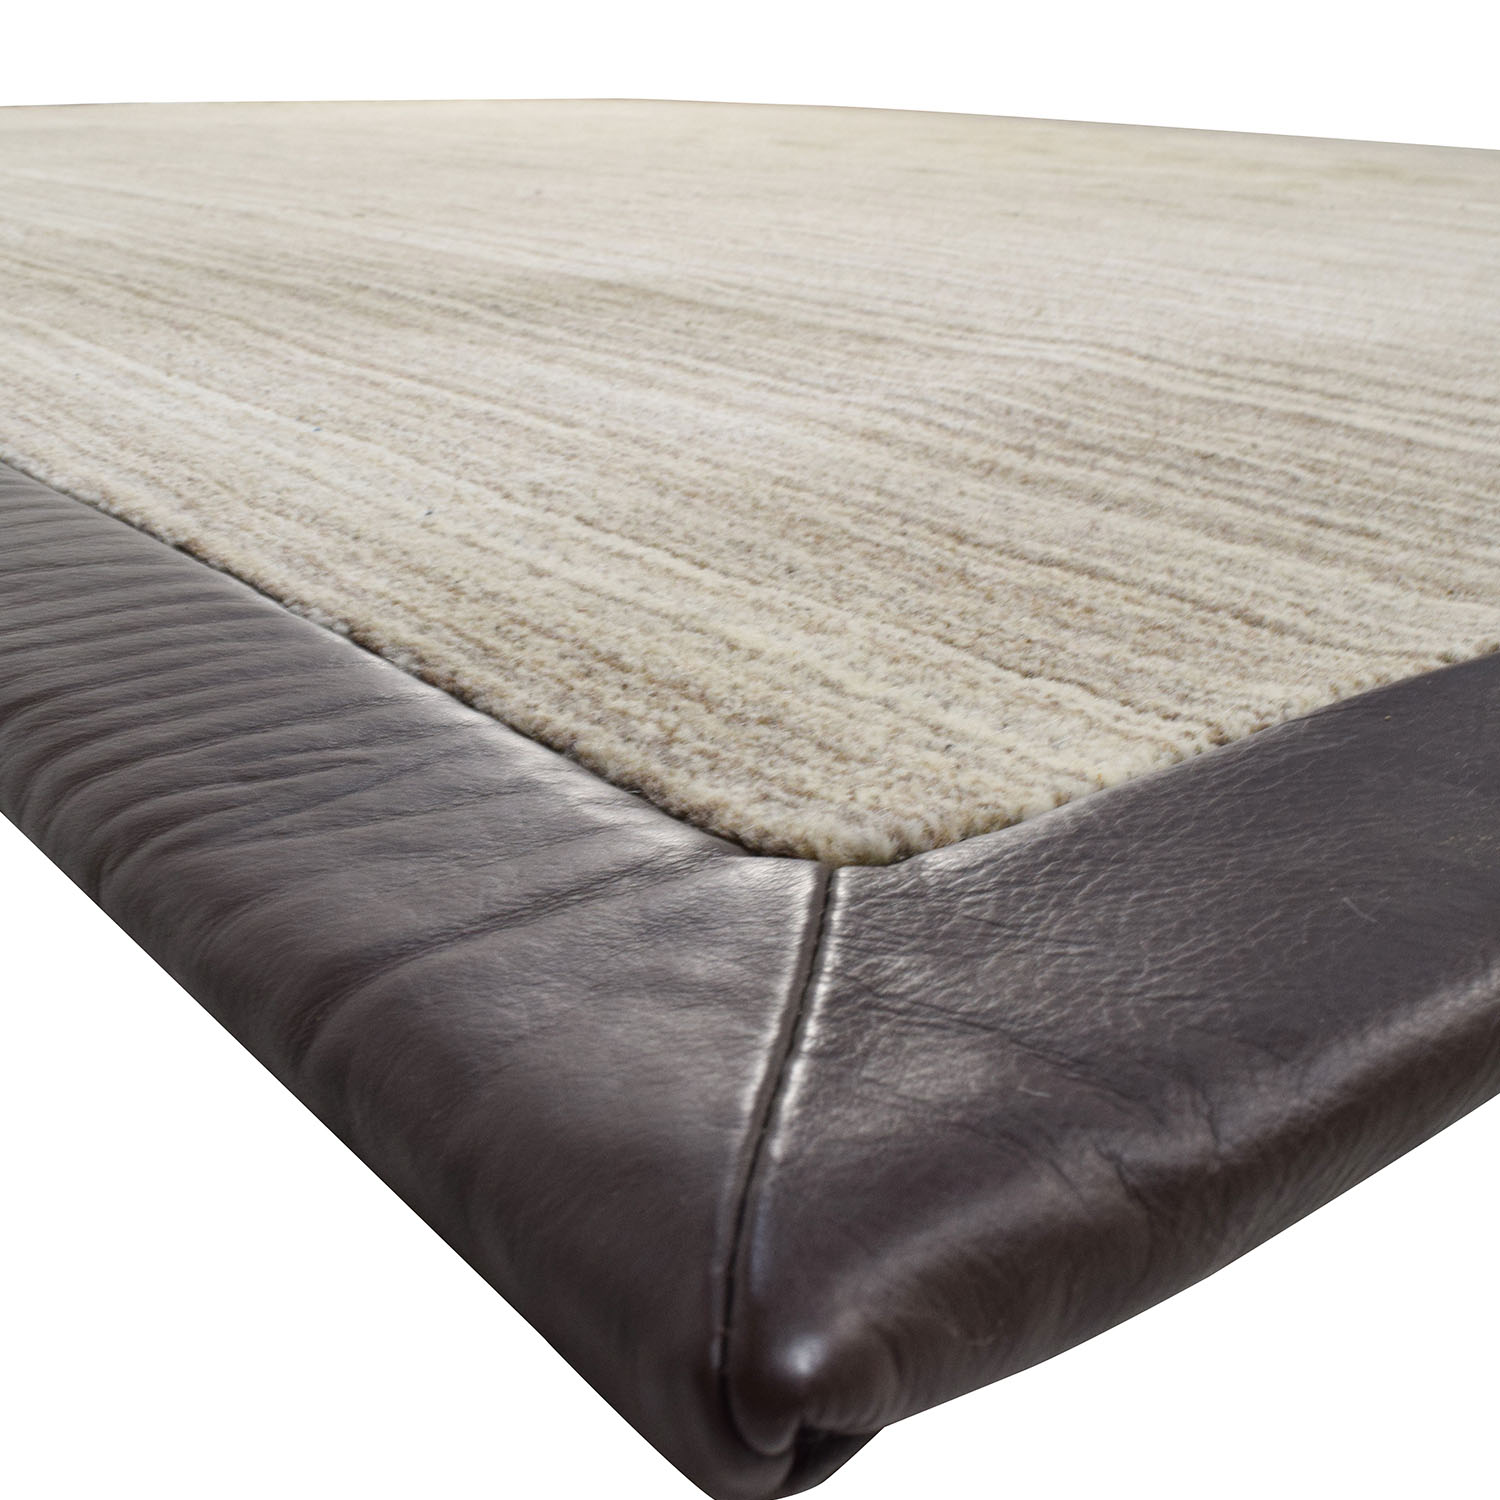 Stark Carpets Stark Carpets Beige with Brown Leather Trim Rug second hand